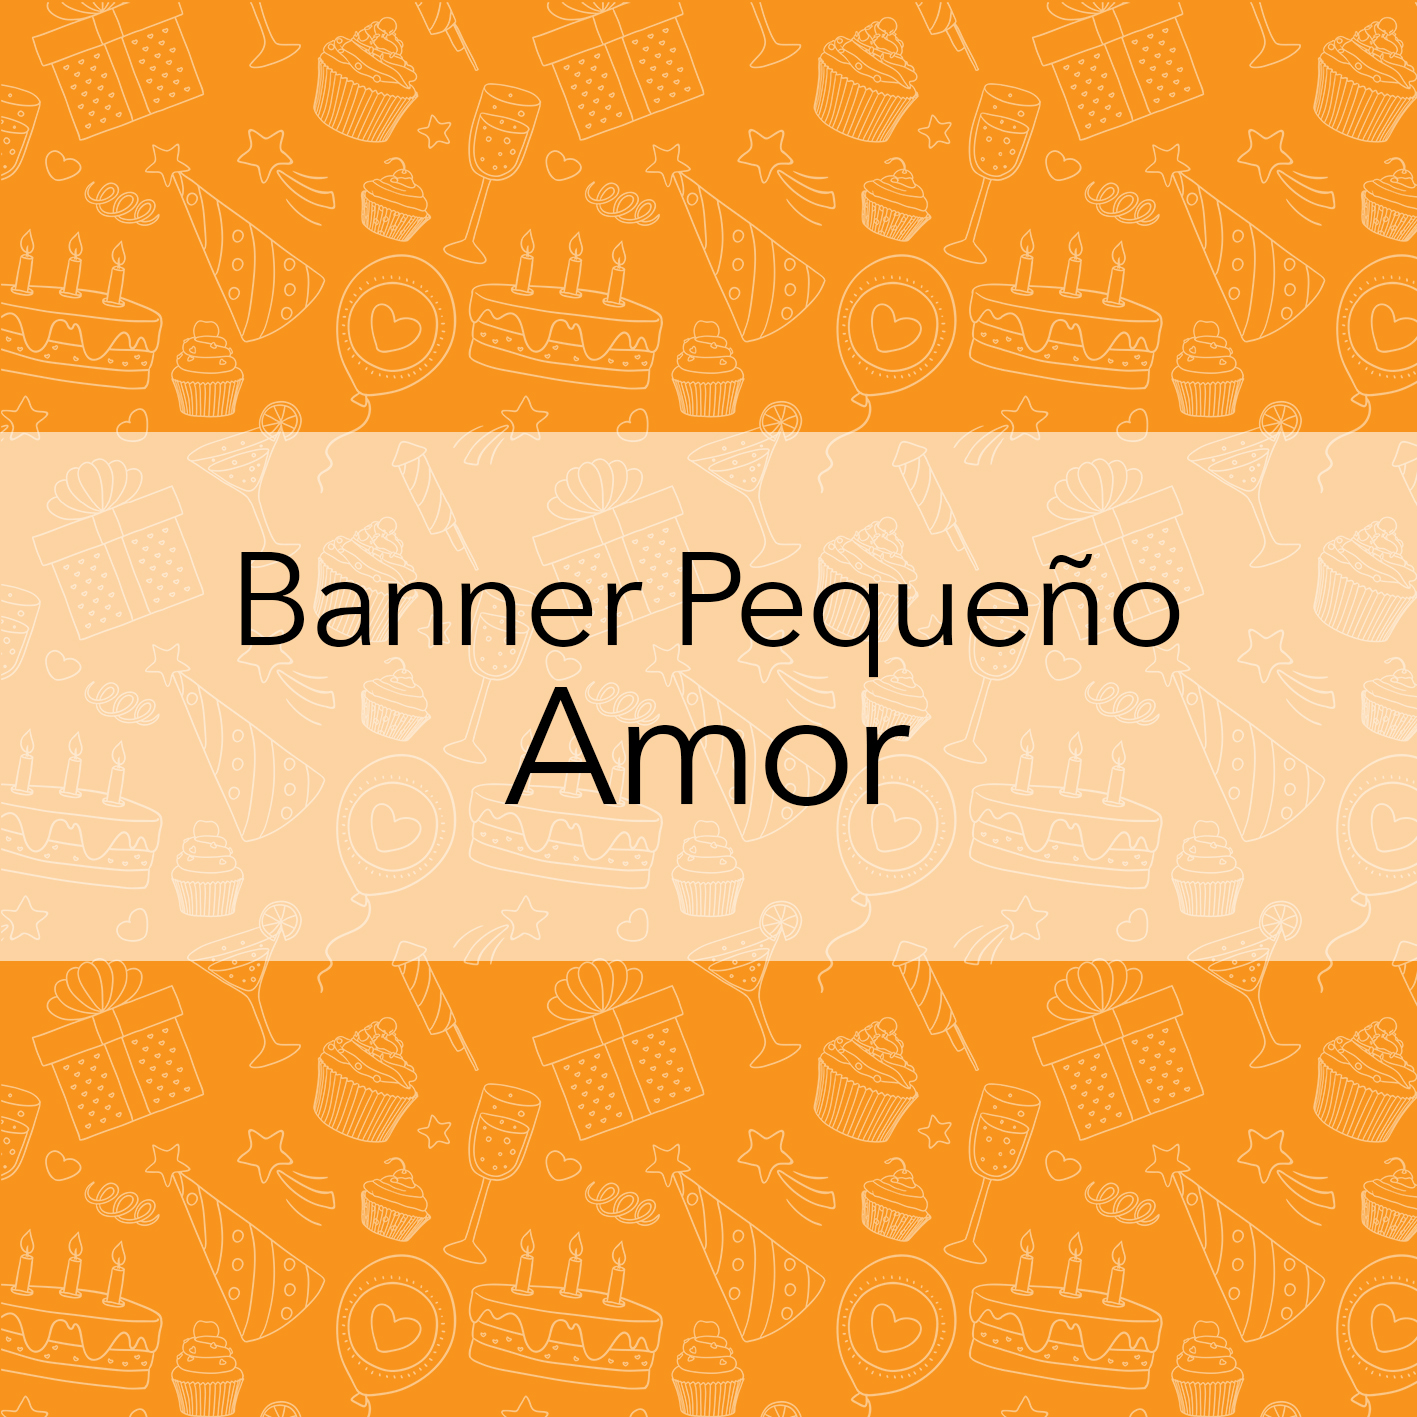 BANNERS PEQUEÑOS - AMOR